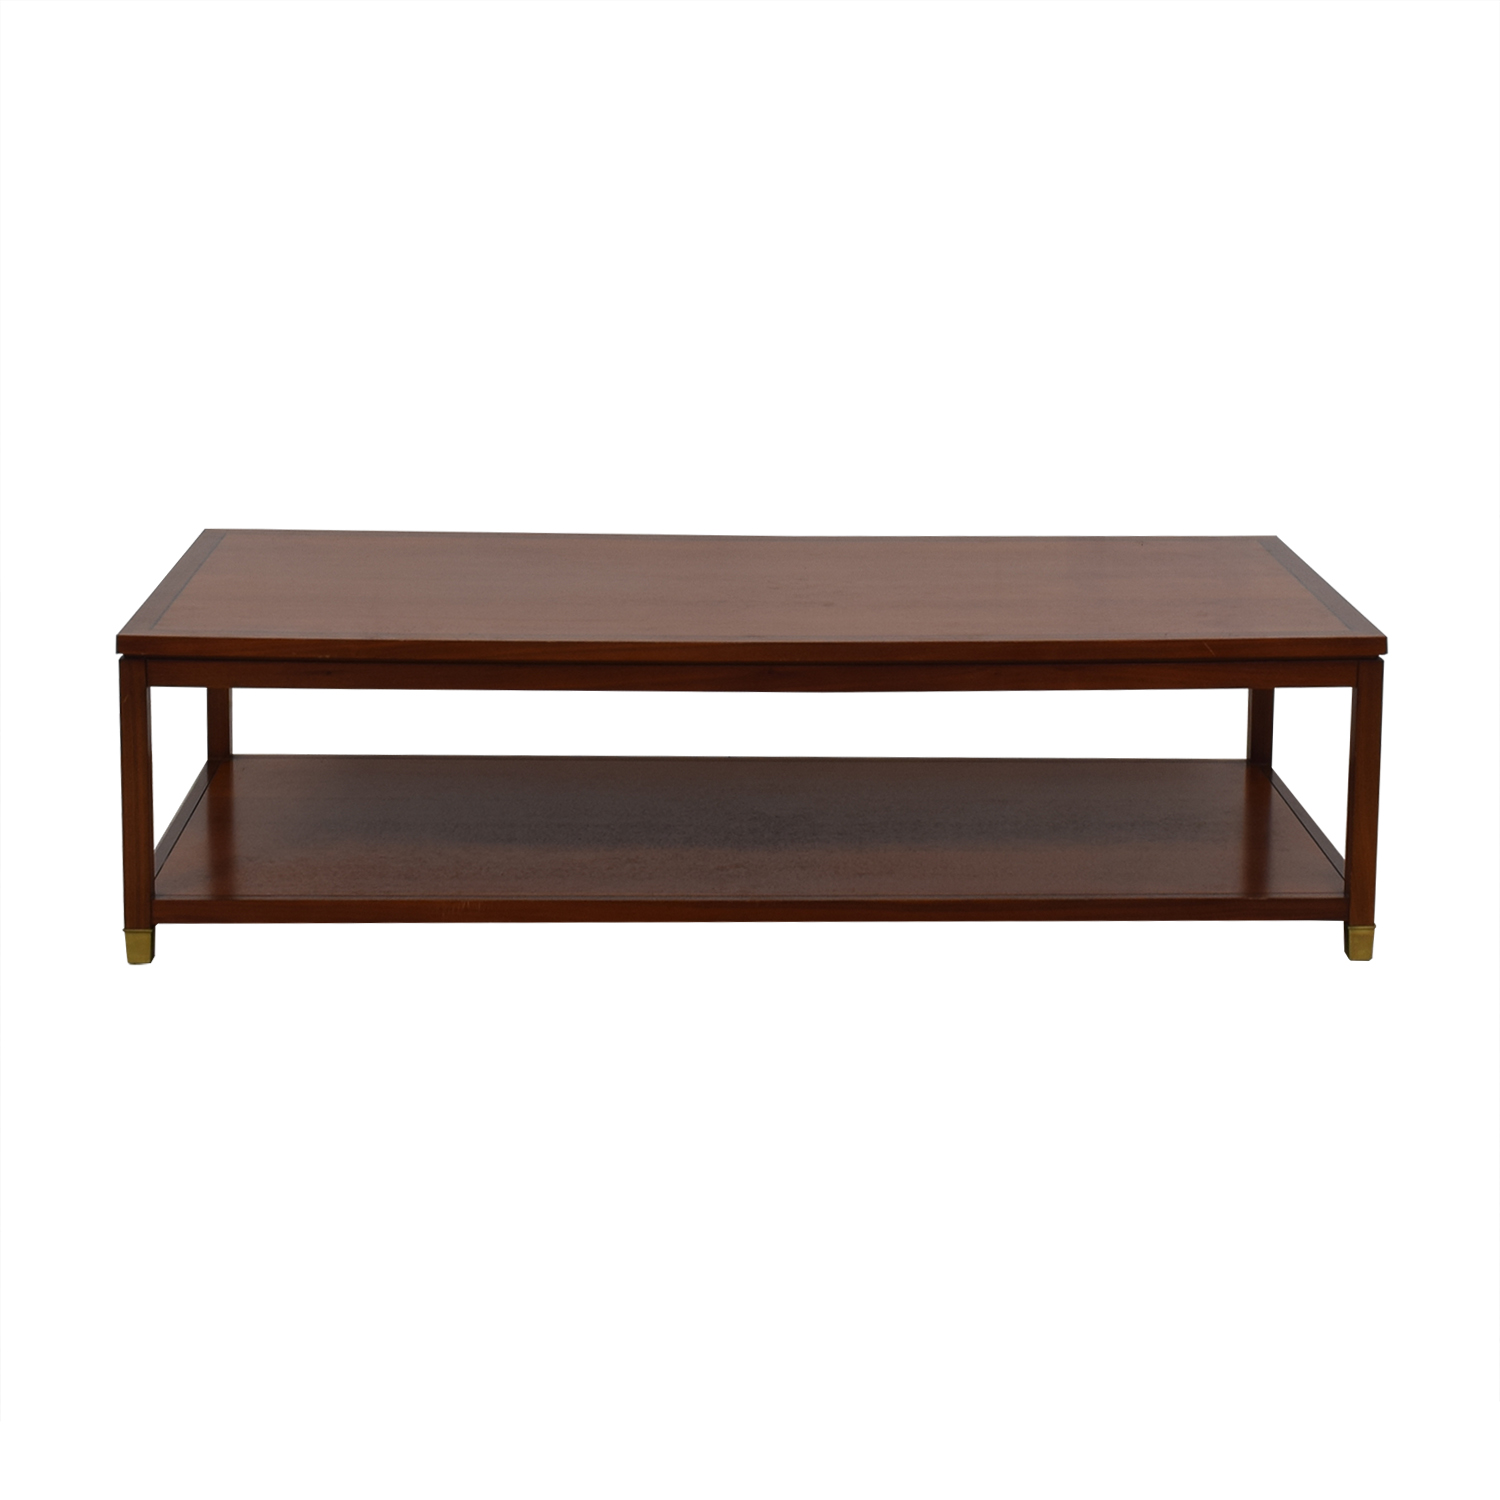 Mitchell Gold + Bob Williams Mitchell Gold + Bob Williams Rectangular Coffee Table price